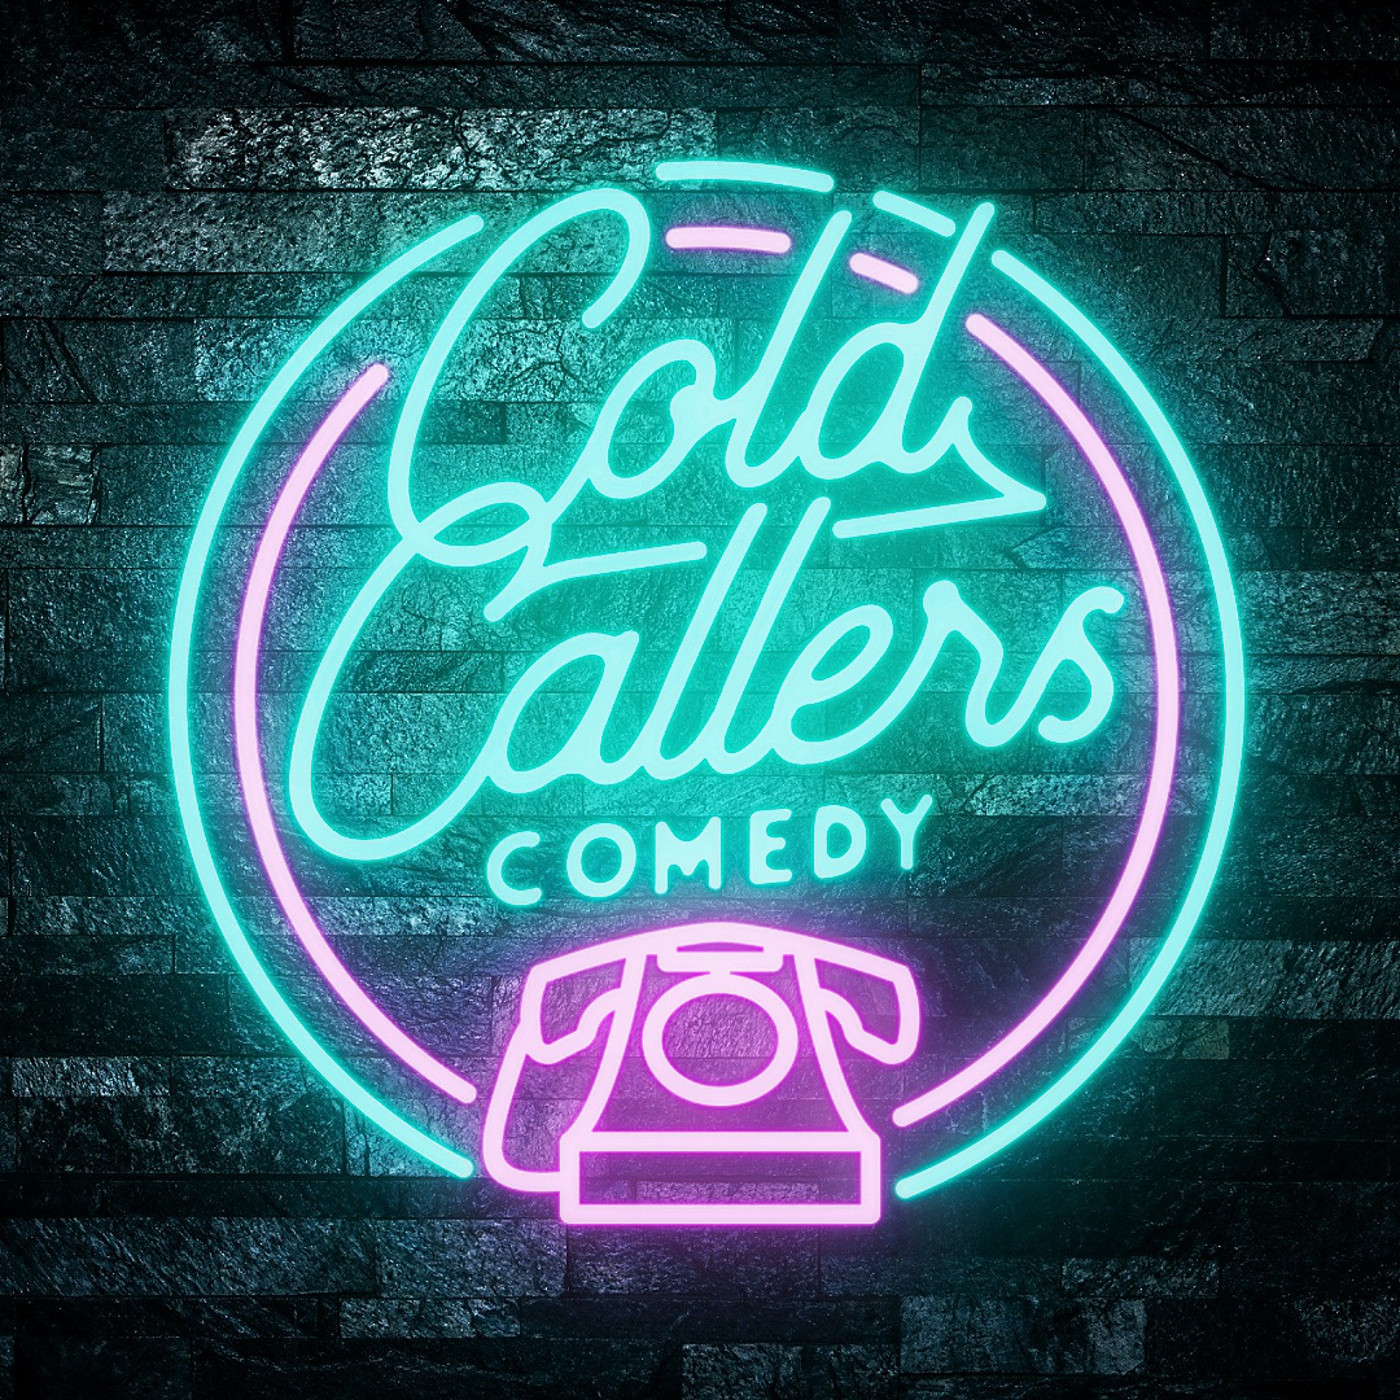 A Cold Callers Christmas Carol - Podcast - Cold Callers Comedy